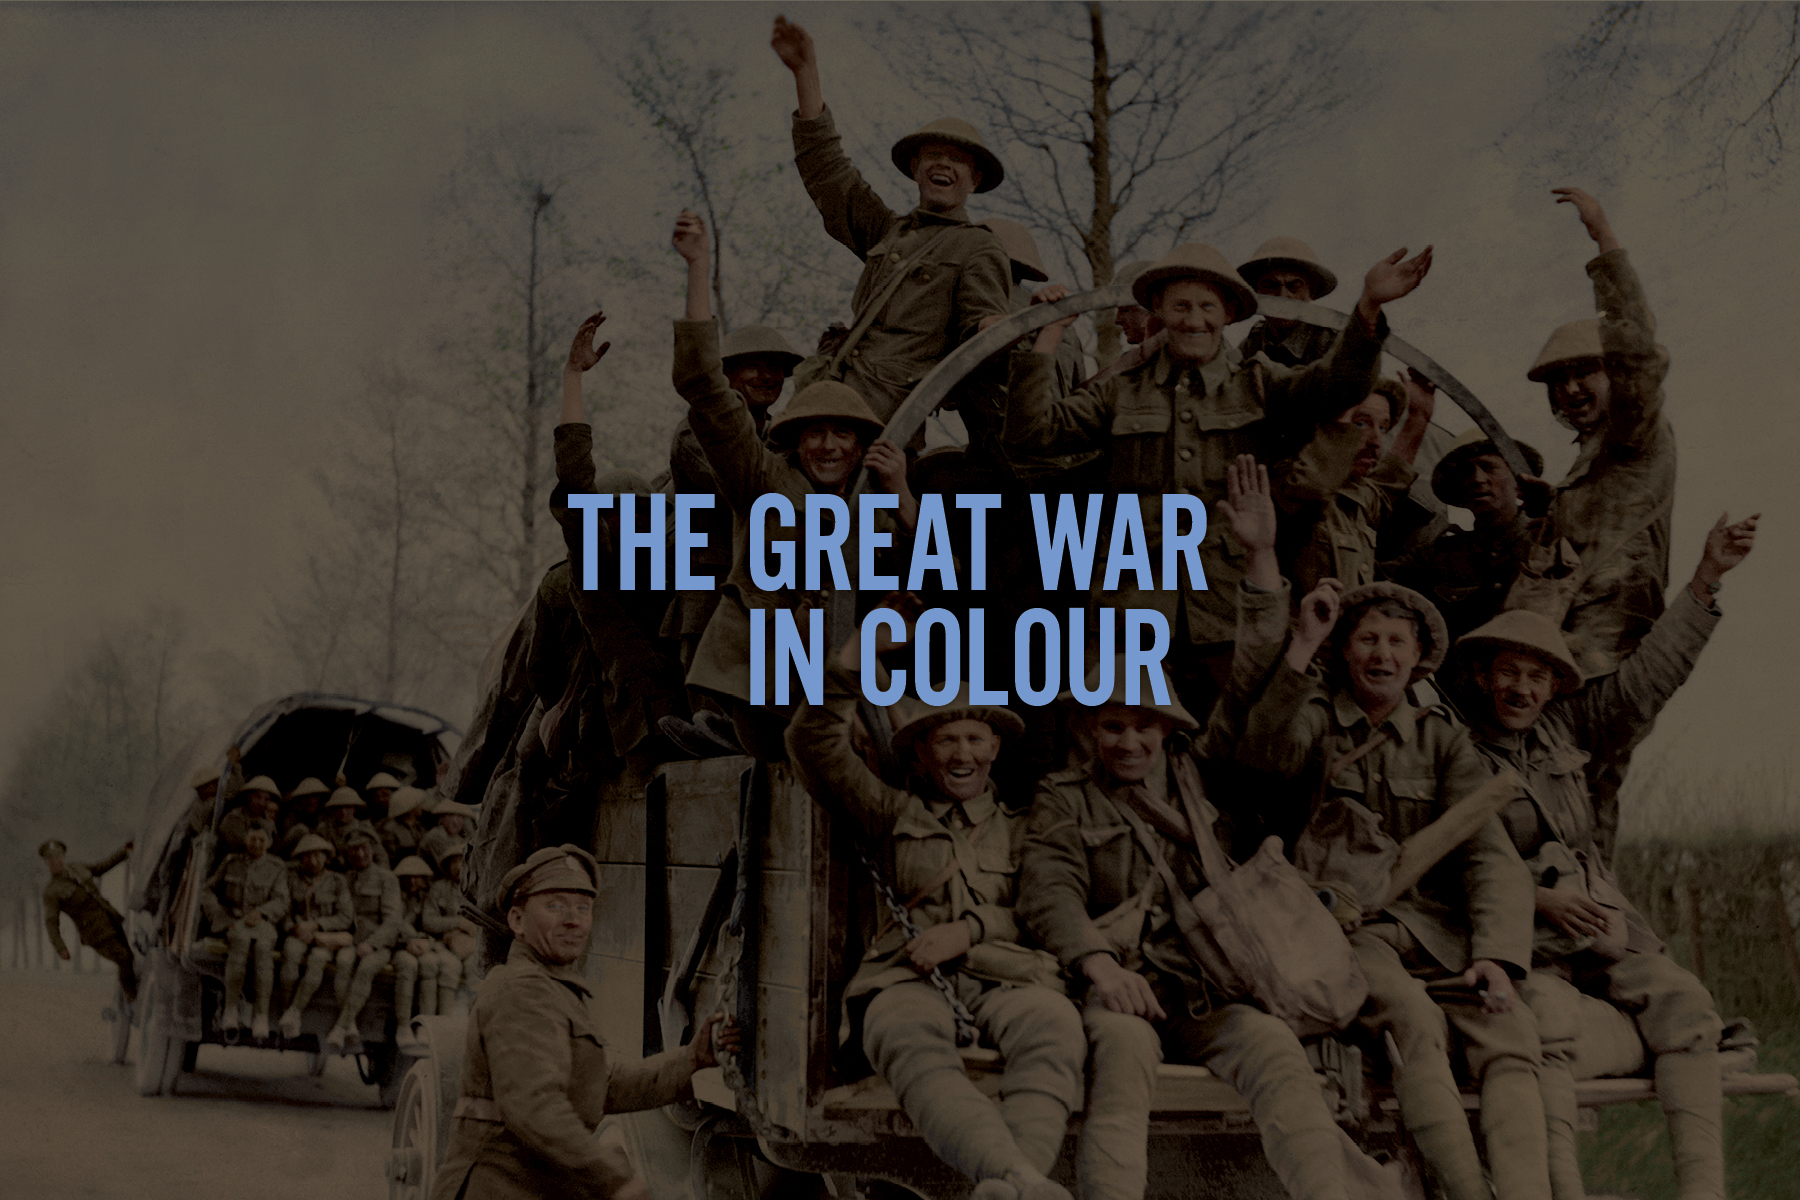 The Great War in Colour - Toronto, ON